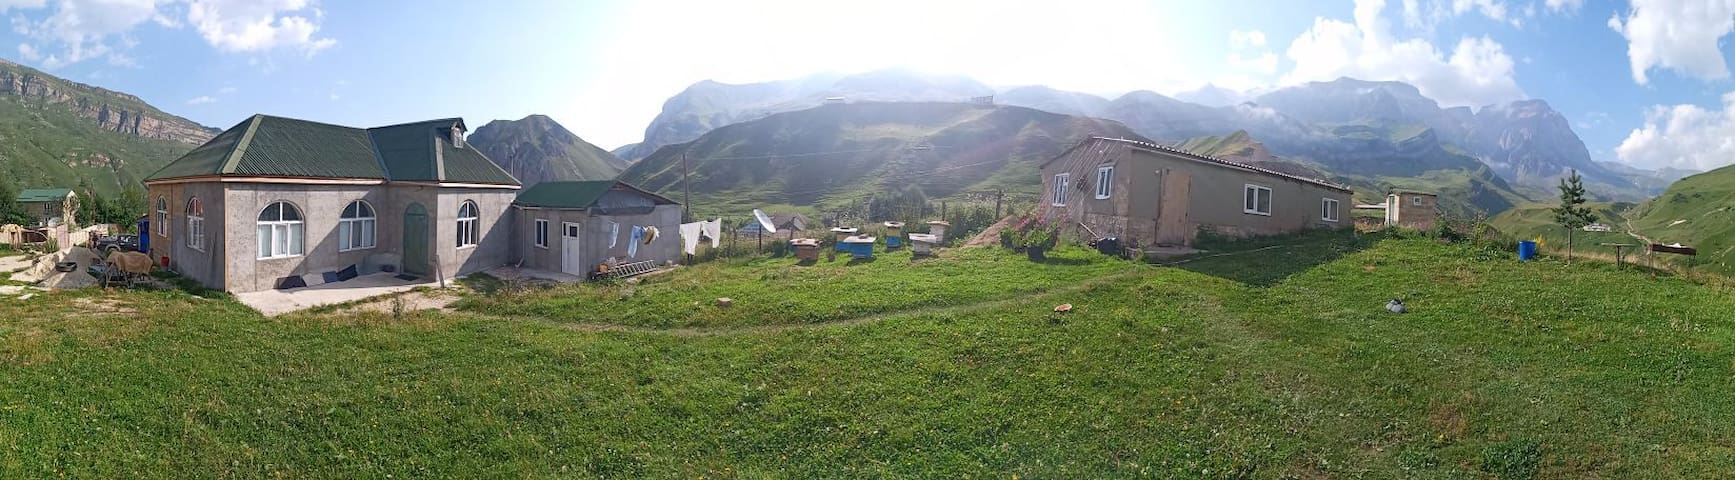 Village house between the Caucasus mountains